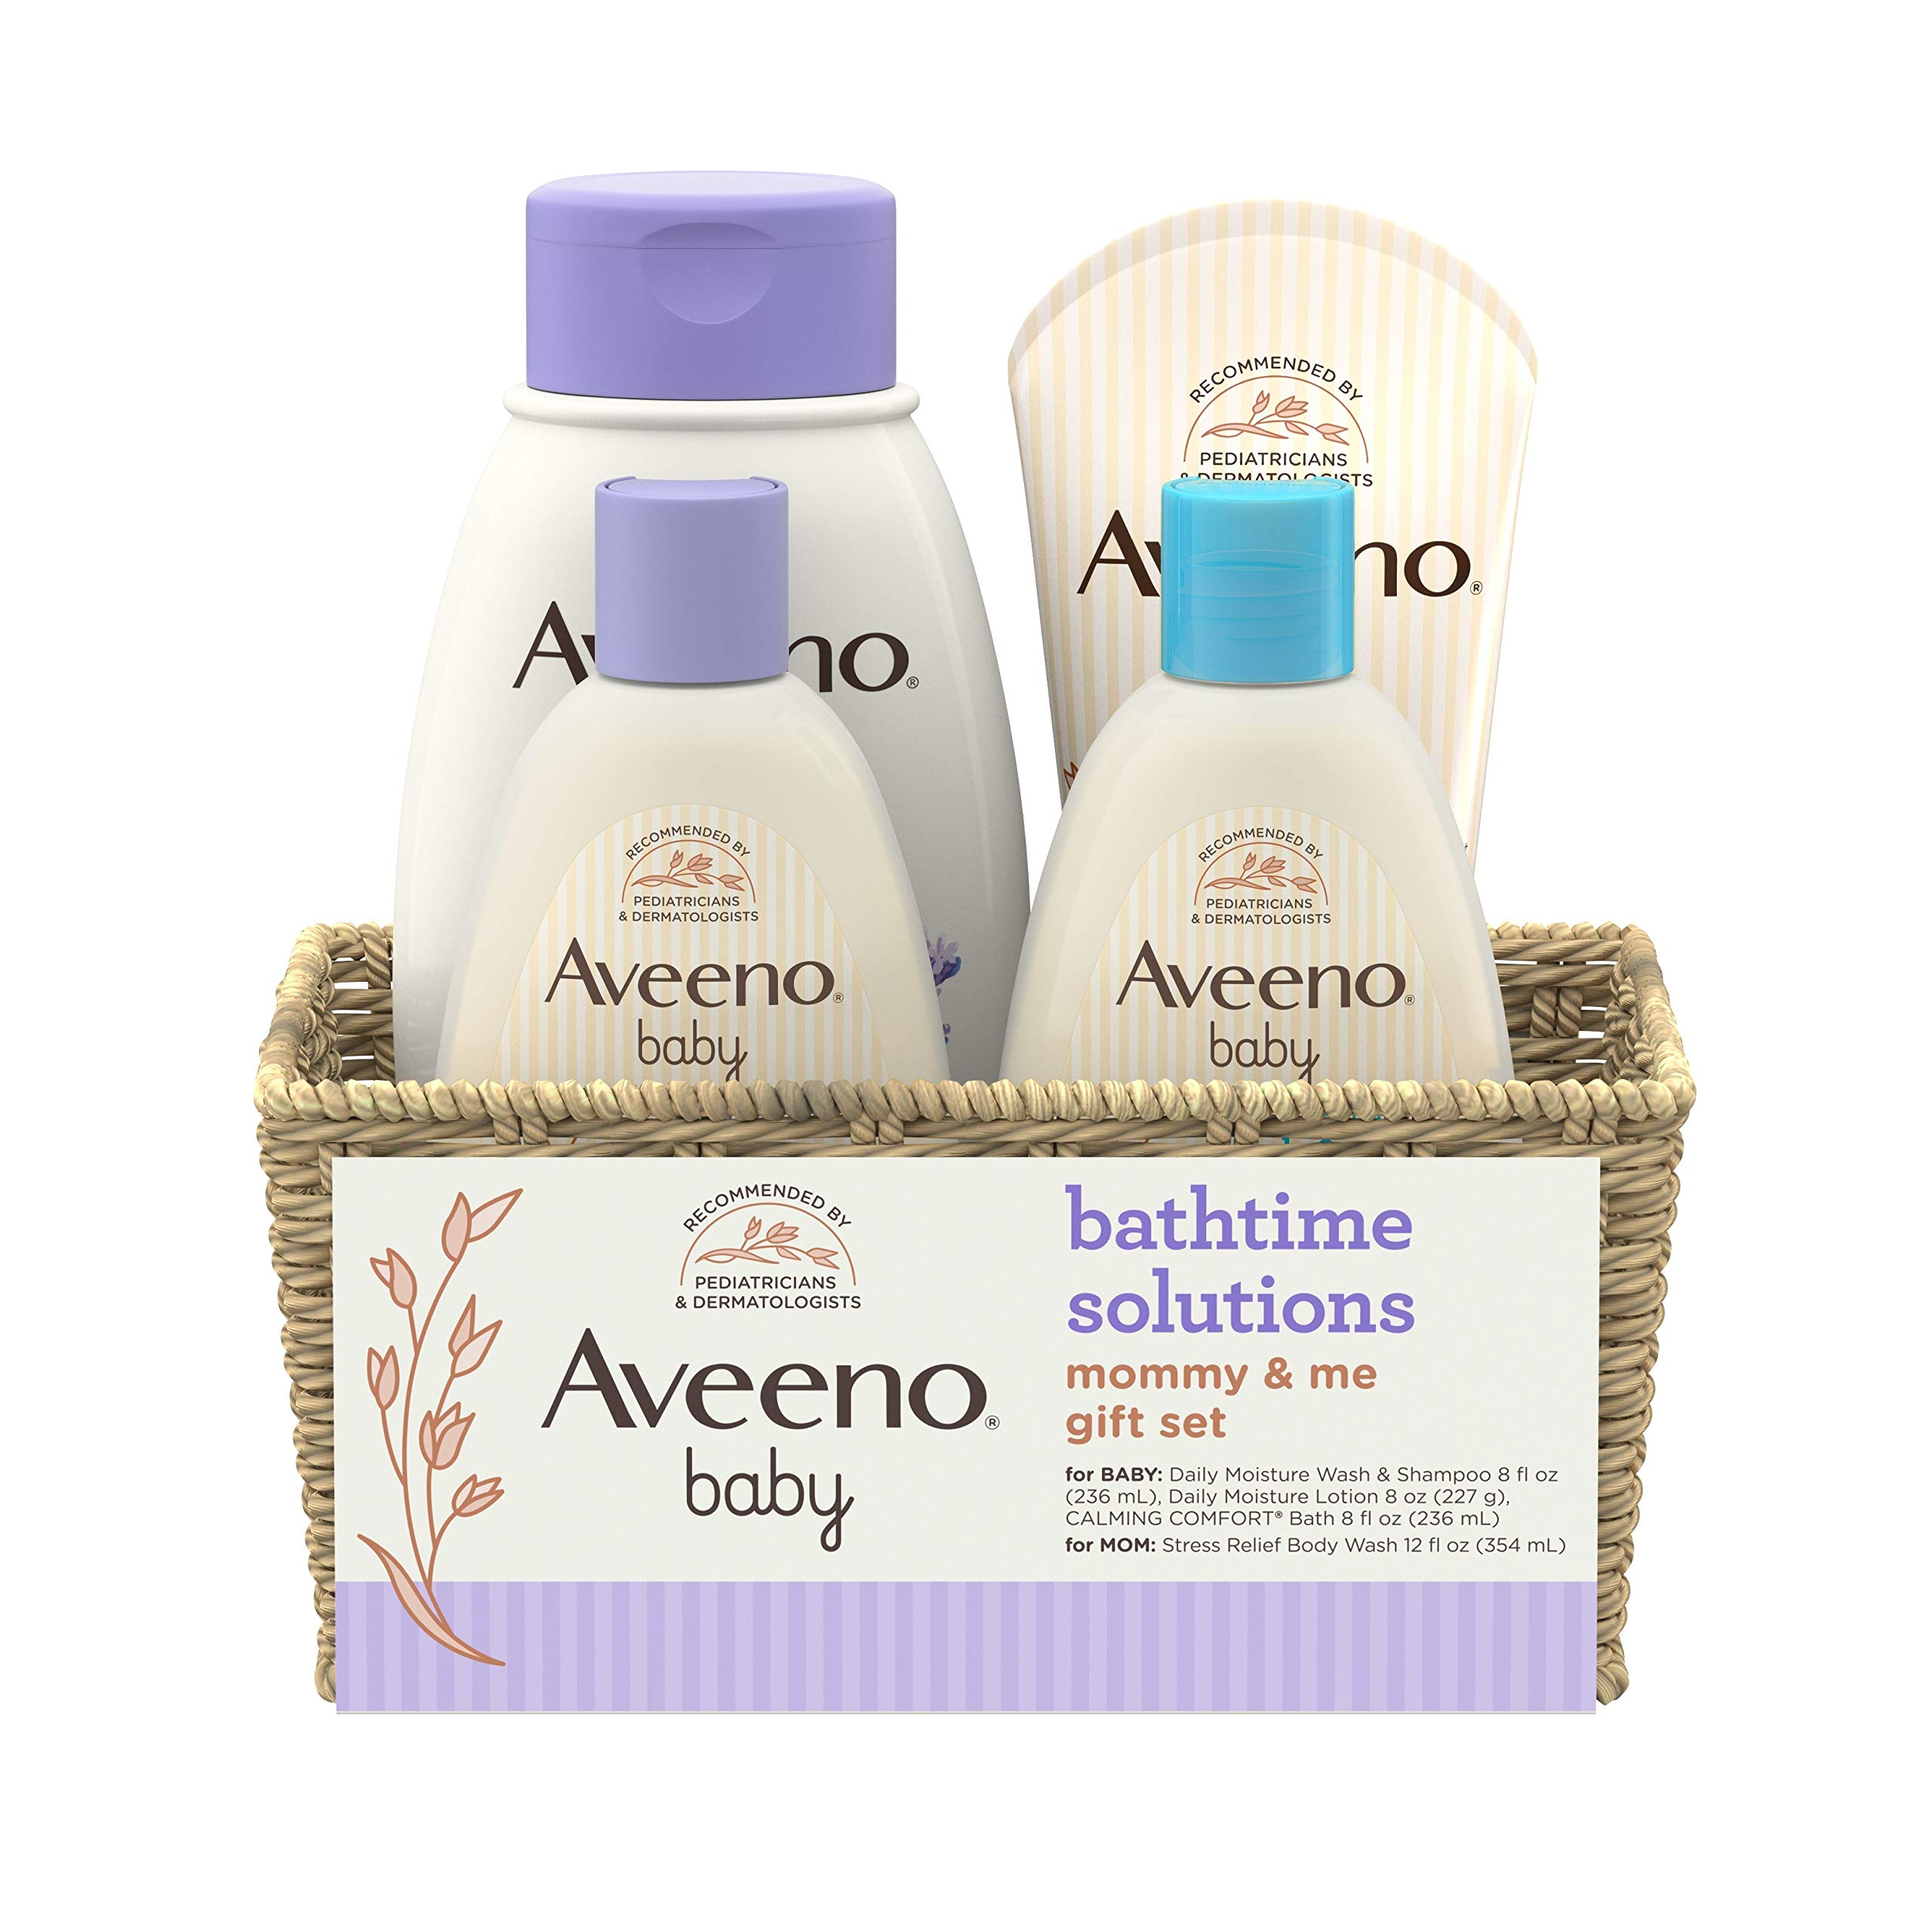 Aveeno Baby Mommy & Me Daily Bathtime Gift Set including Baby Wash & Shampoo, Calming Baby Bath & Wash, Baby Moisturizing Lotion & Stress Relief Body Wash for Mom, 4 Items